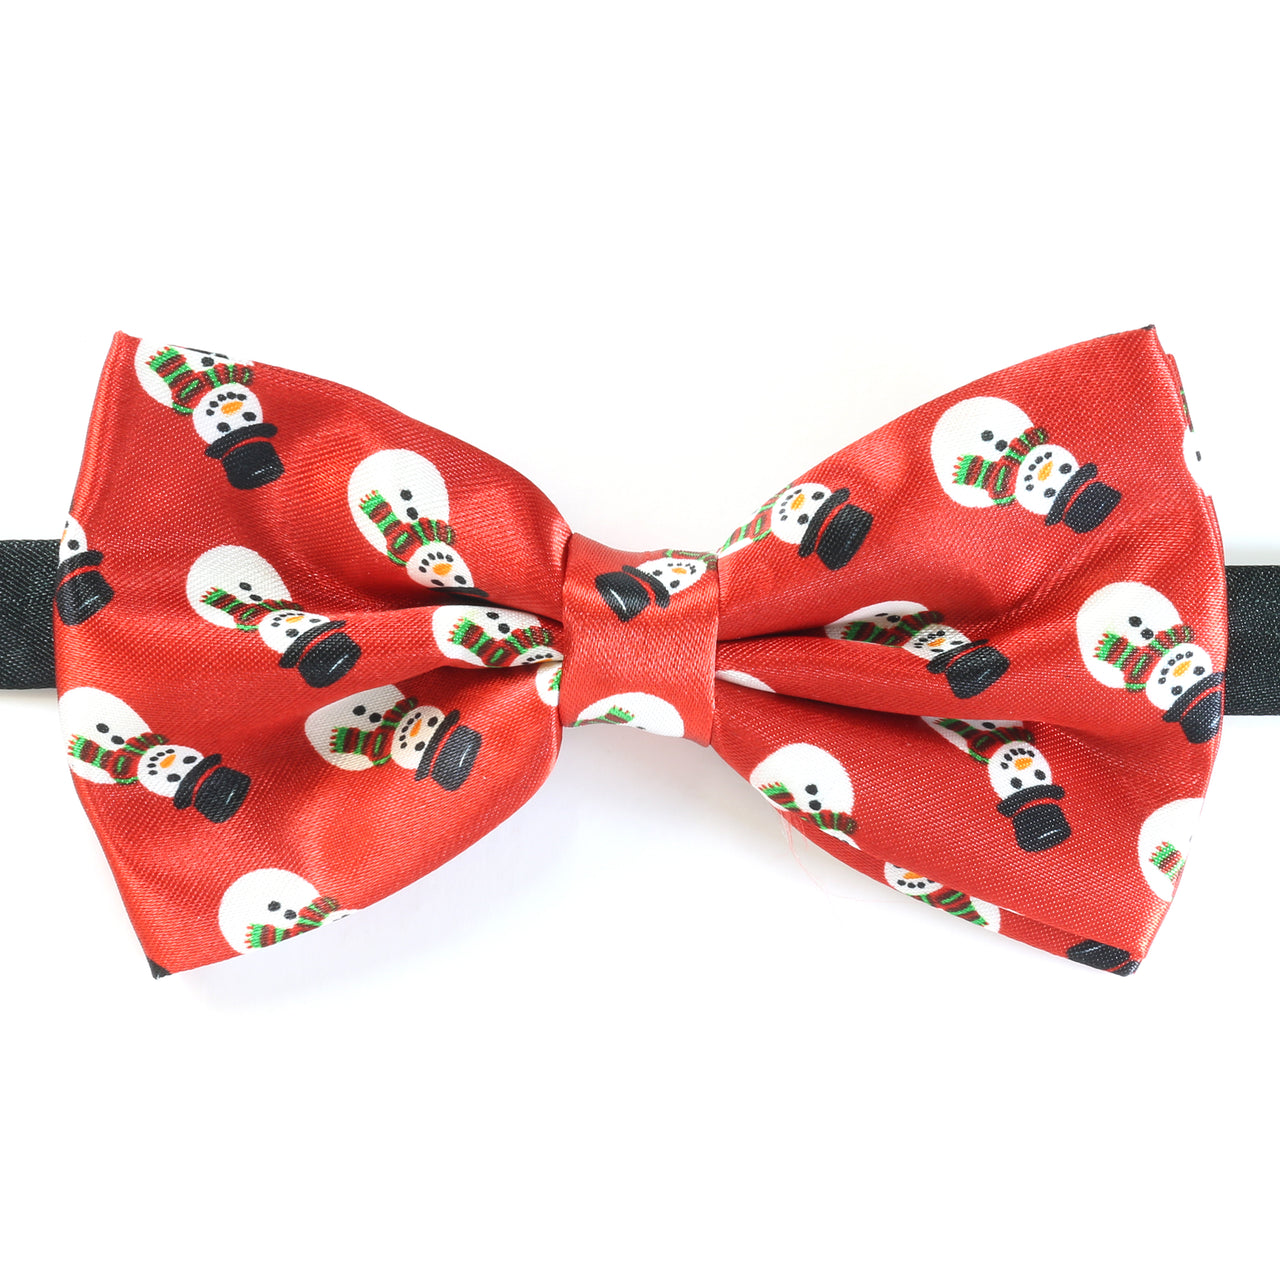 Christmas Bow Tie - Snowman Repeat - Red